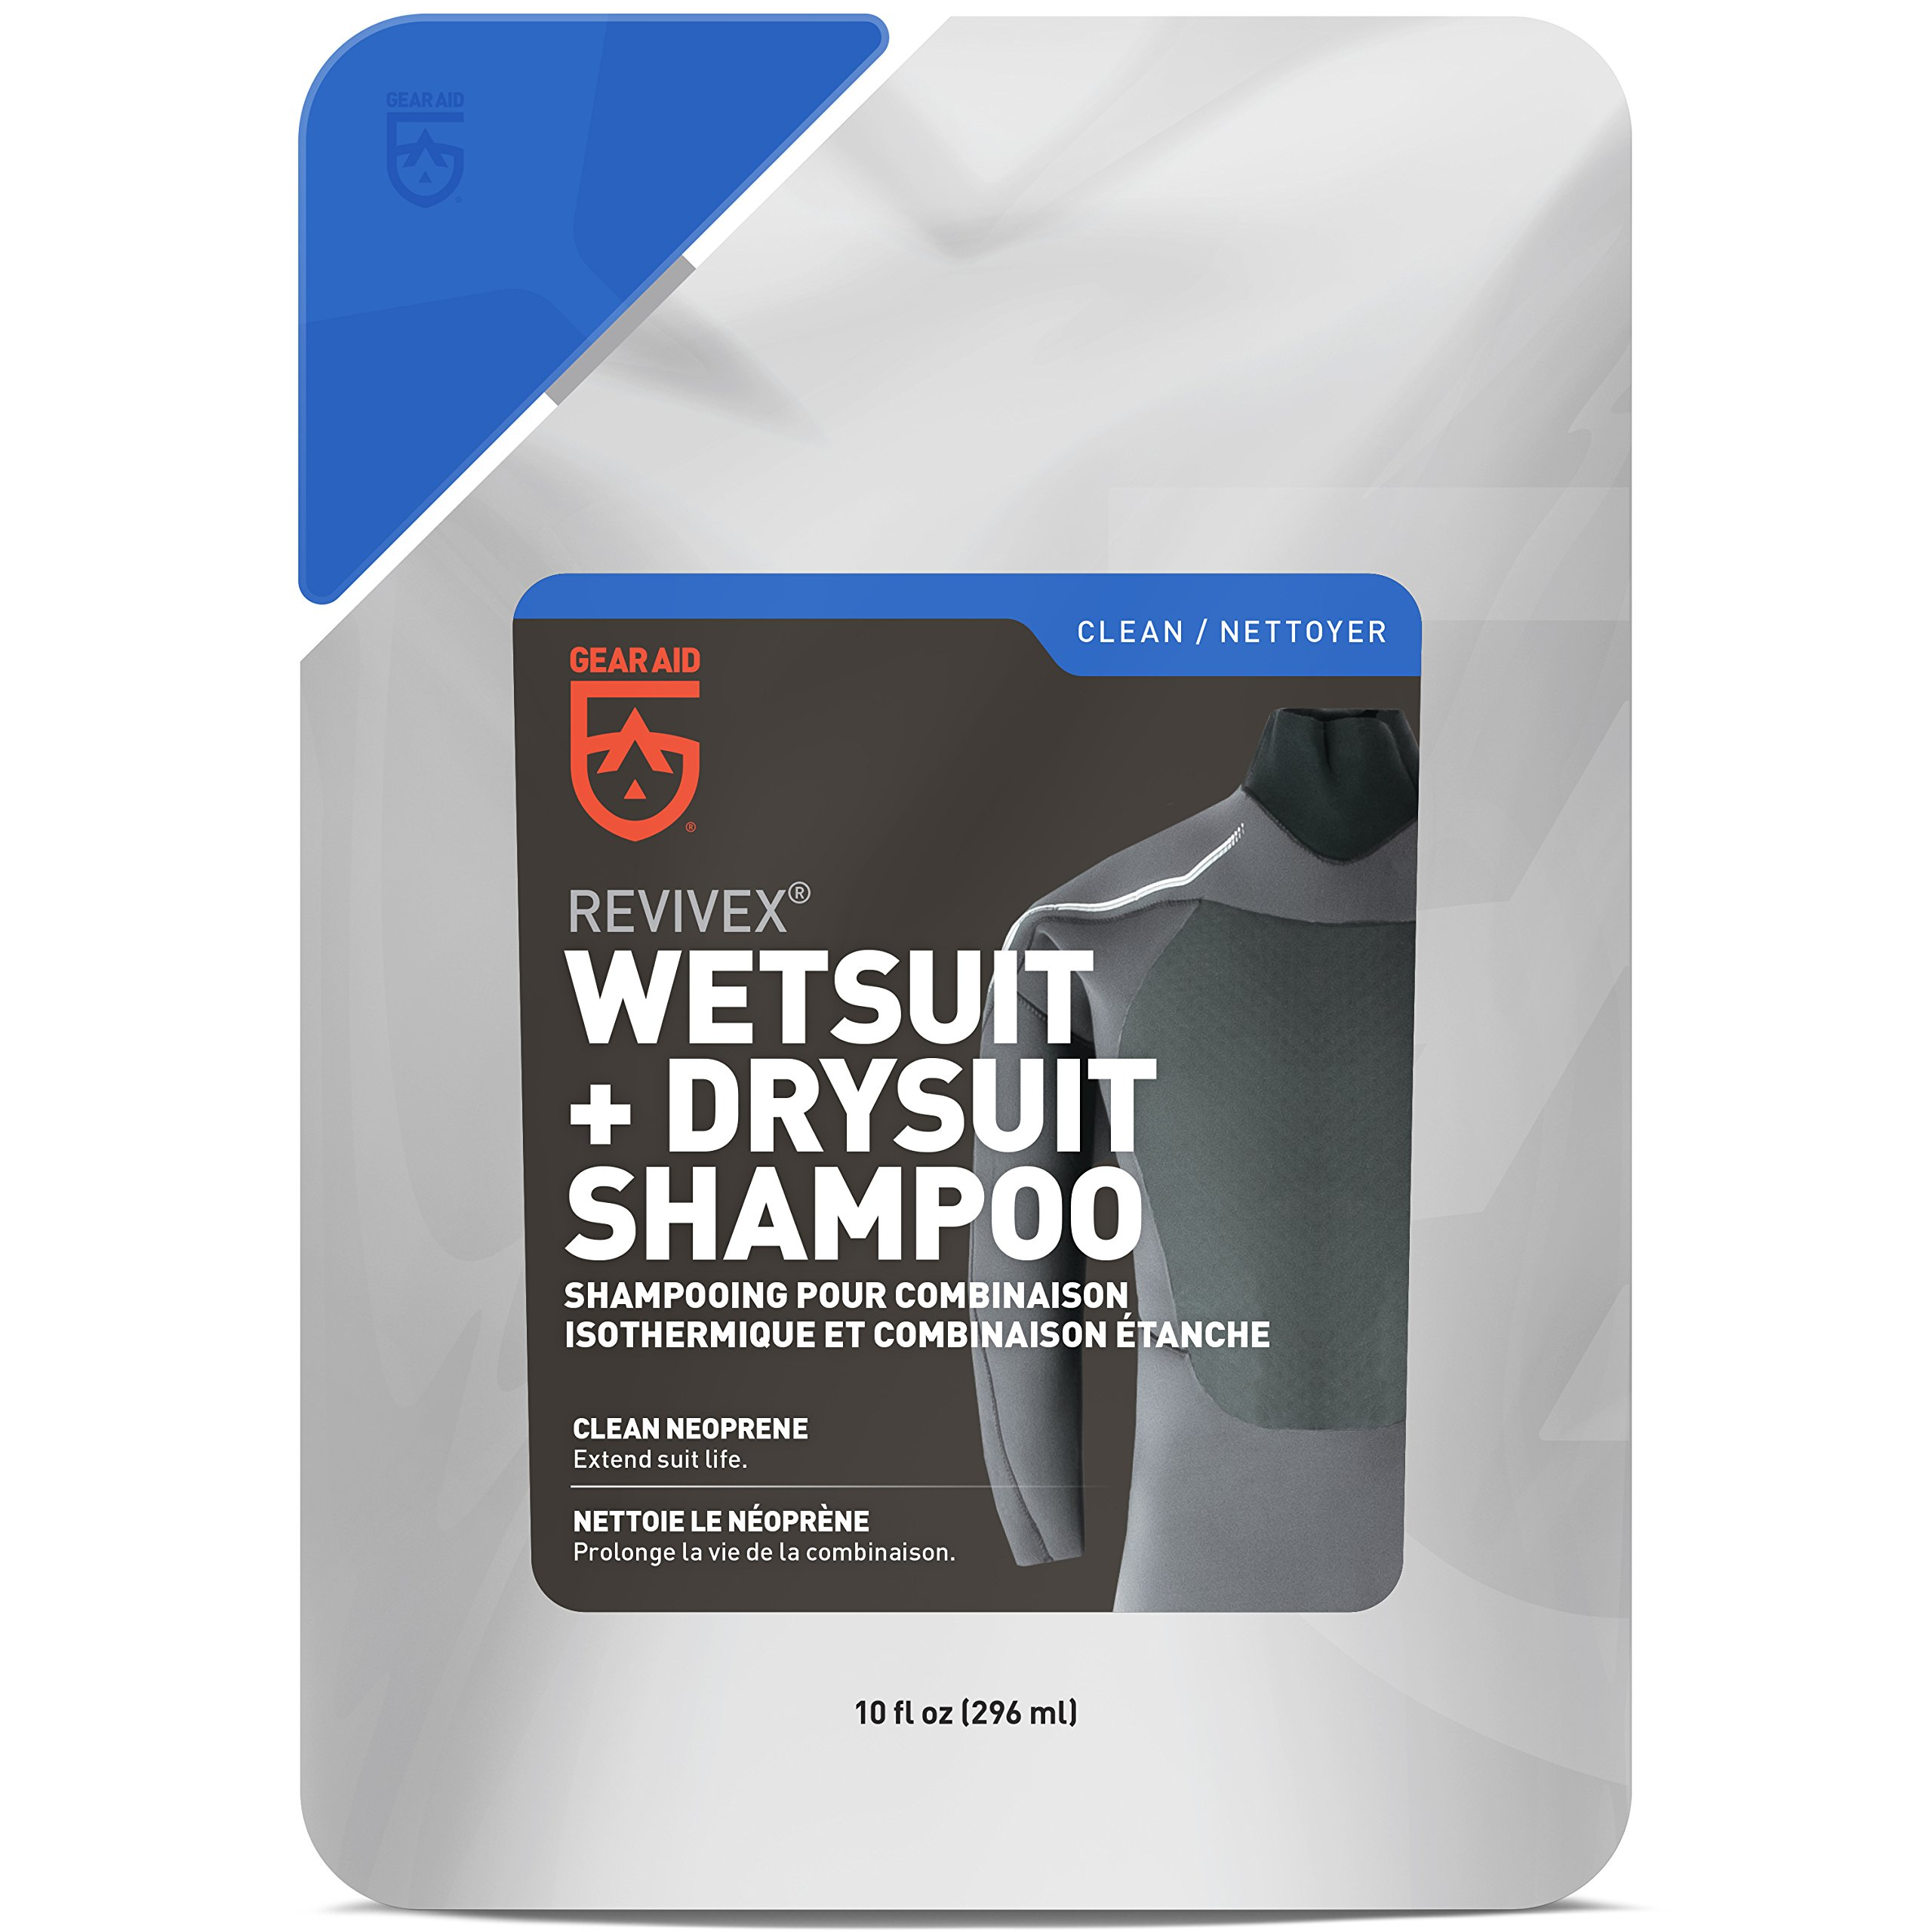 GEAR AID Wetsuit Cleaner and Conditioner, Removes Bacteria, Salt and Residue with Concentrated Shampoo